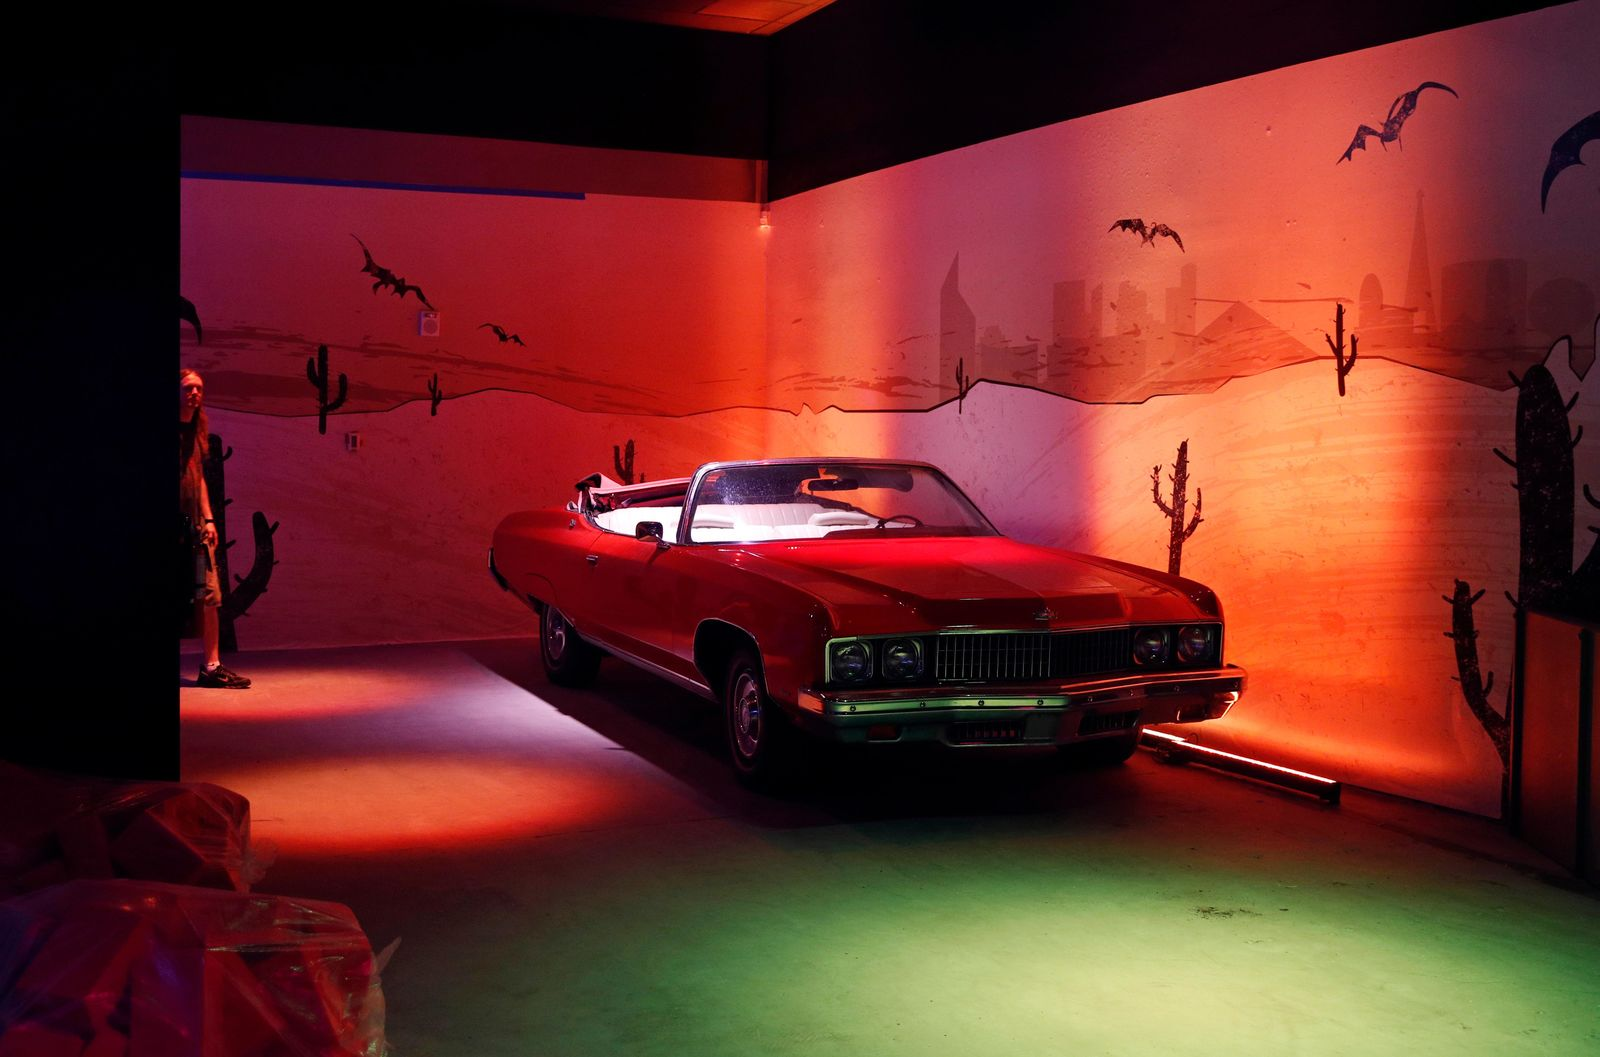 In this Tuesday, Sept. 18, 2018 photo, a Chevrolet Caprice owned by Hunter S. Thompson is on display at the Cannabition cannabis museum in Las Vegas. (AP Photo/John Locher)